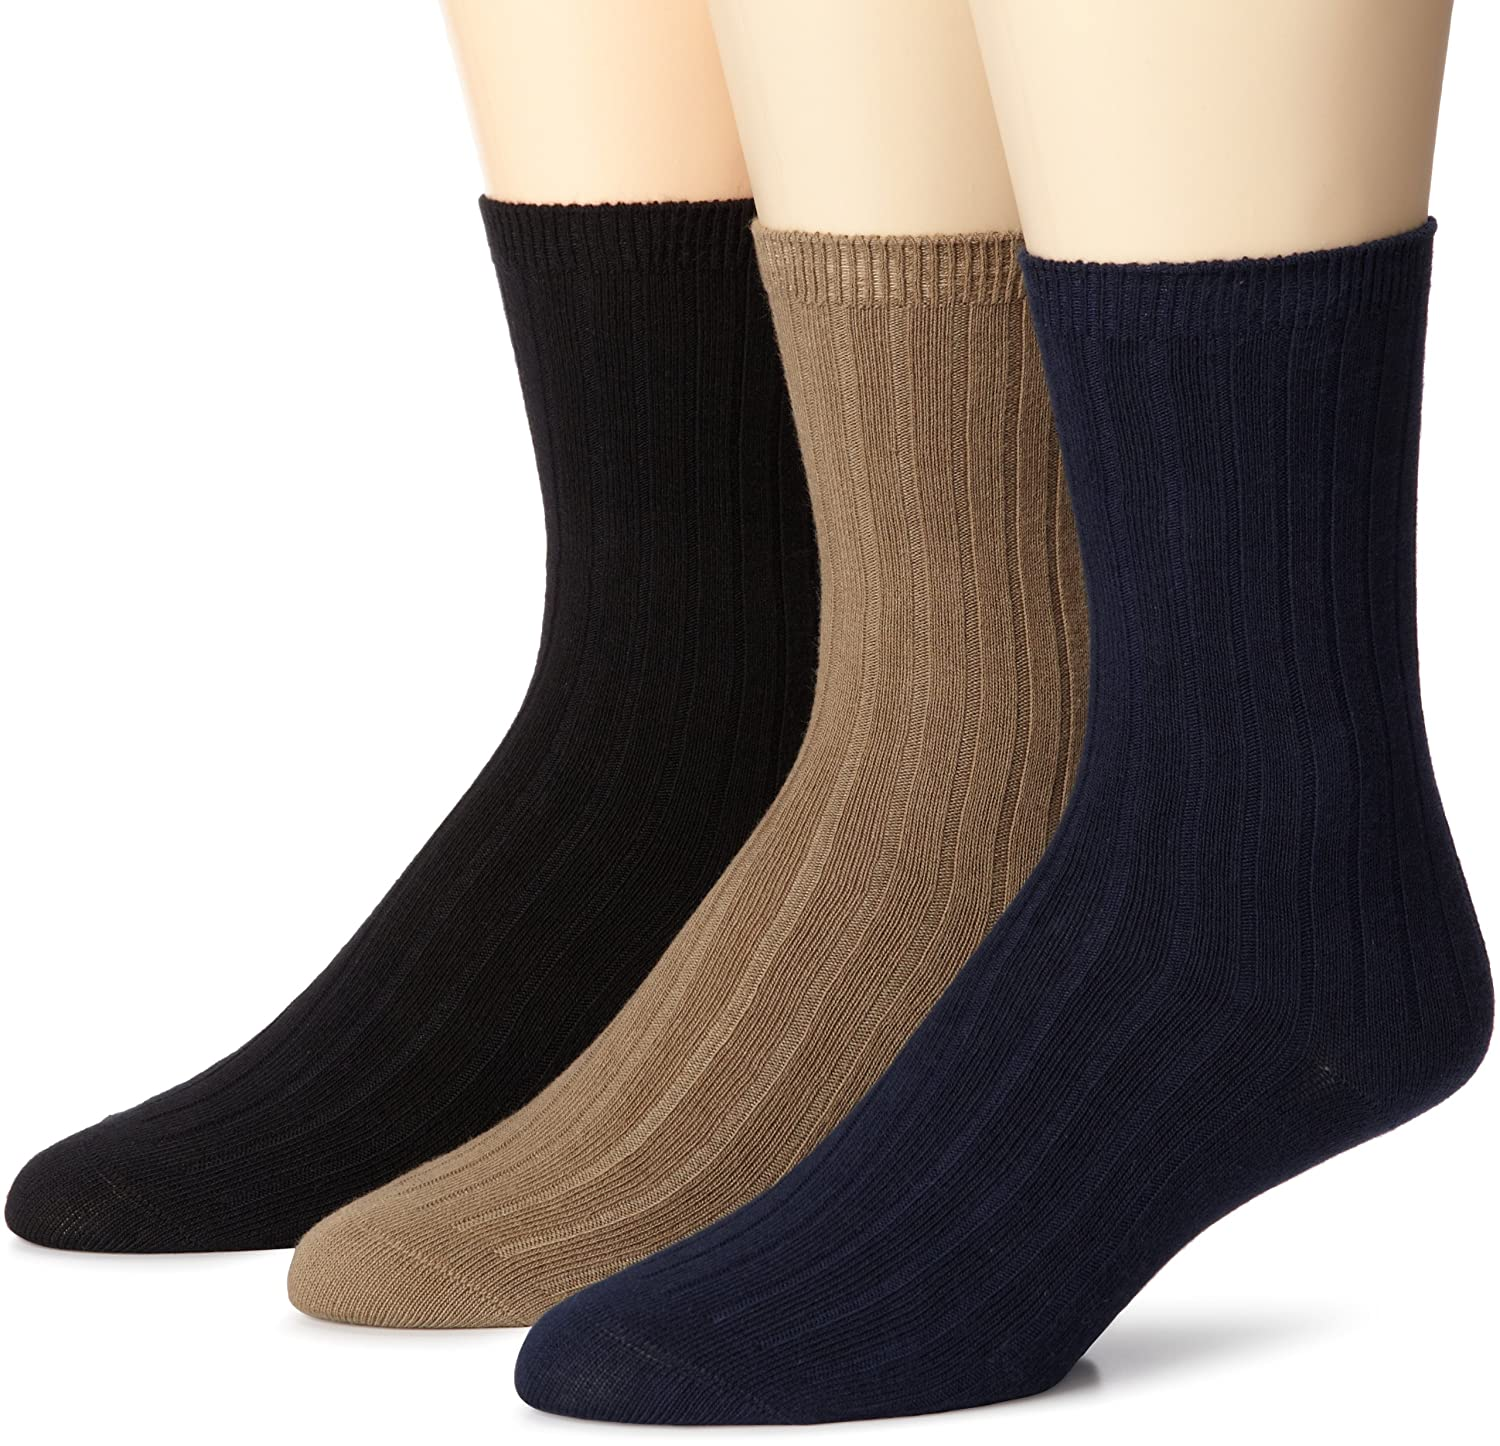 Stride Rite Little Boys' Comfort Seam Ribbed Crew Socks (Pack of Three Pairs) Navy/Khaki/Black 6-7.5 SR36303